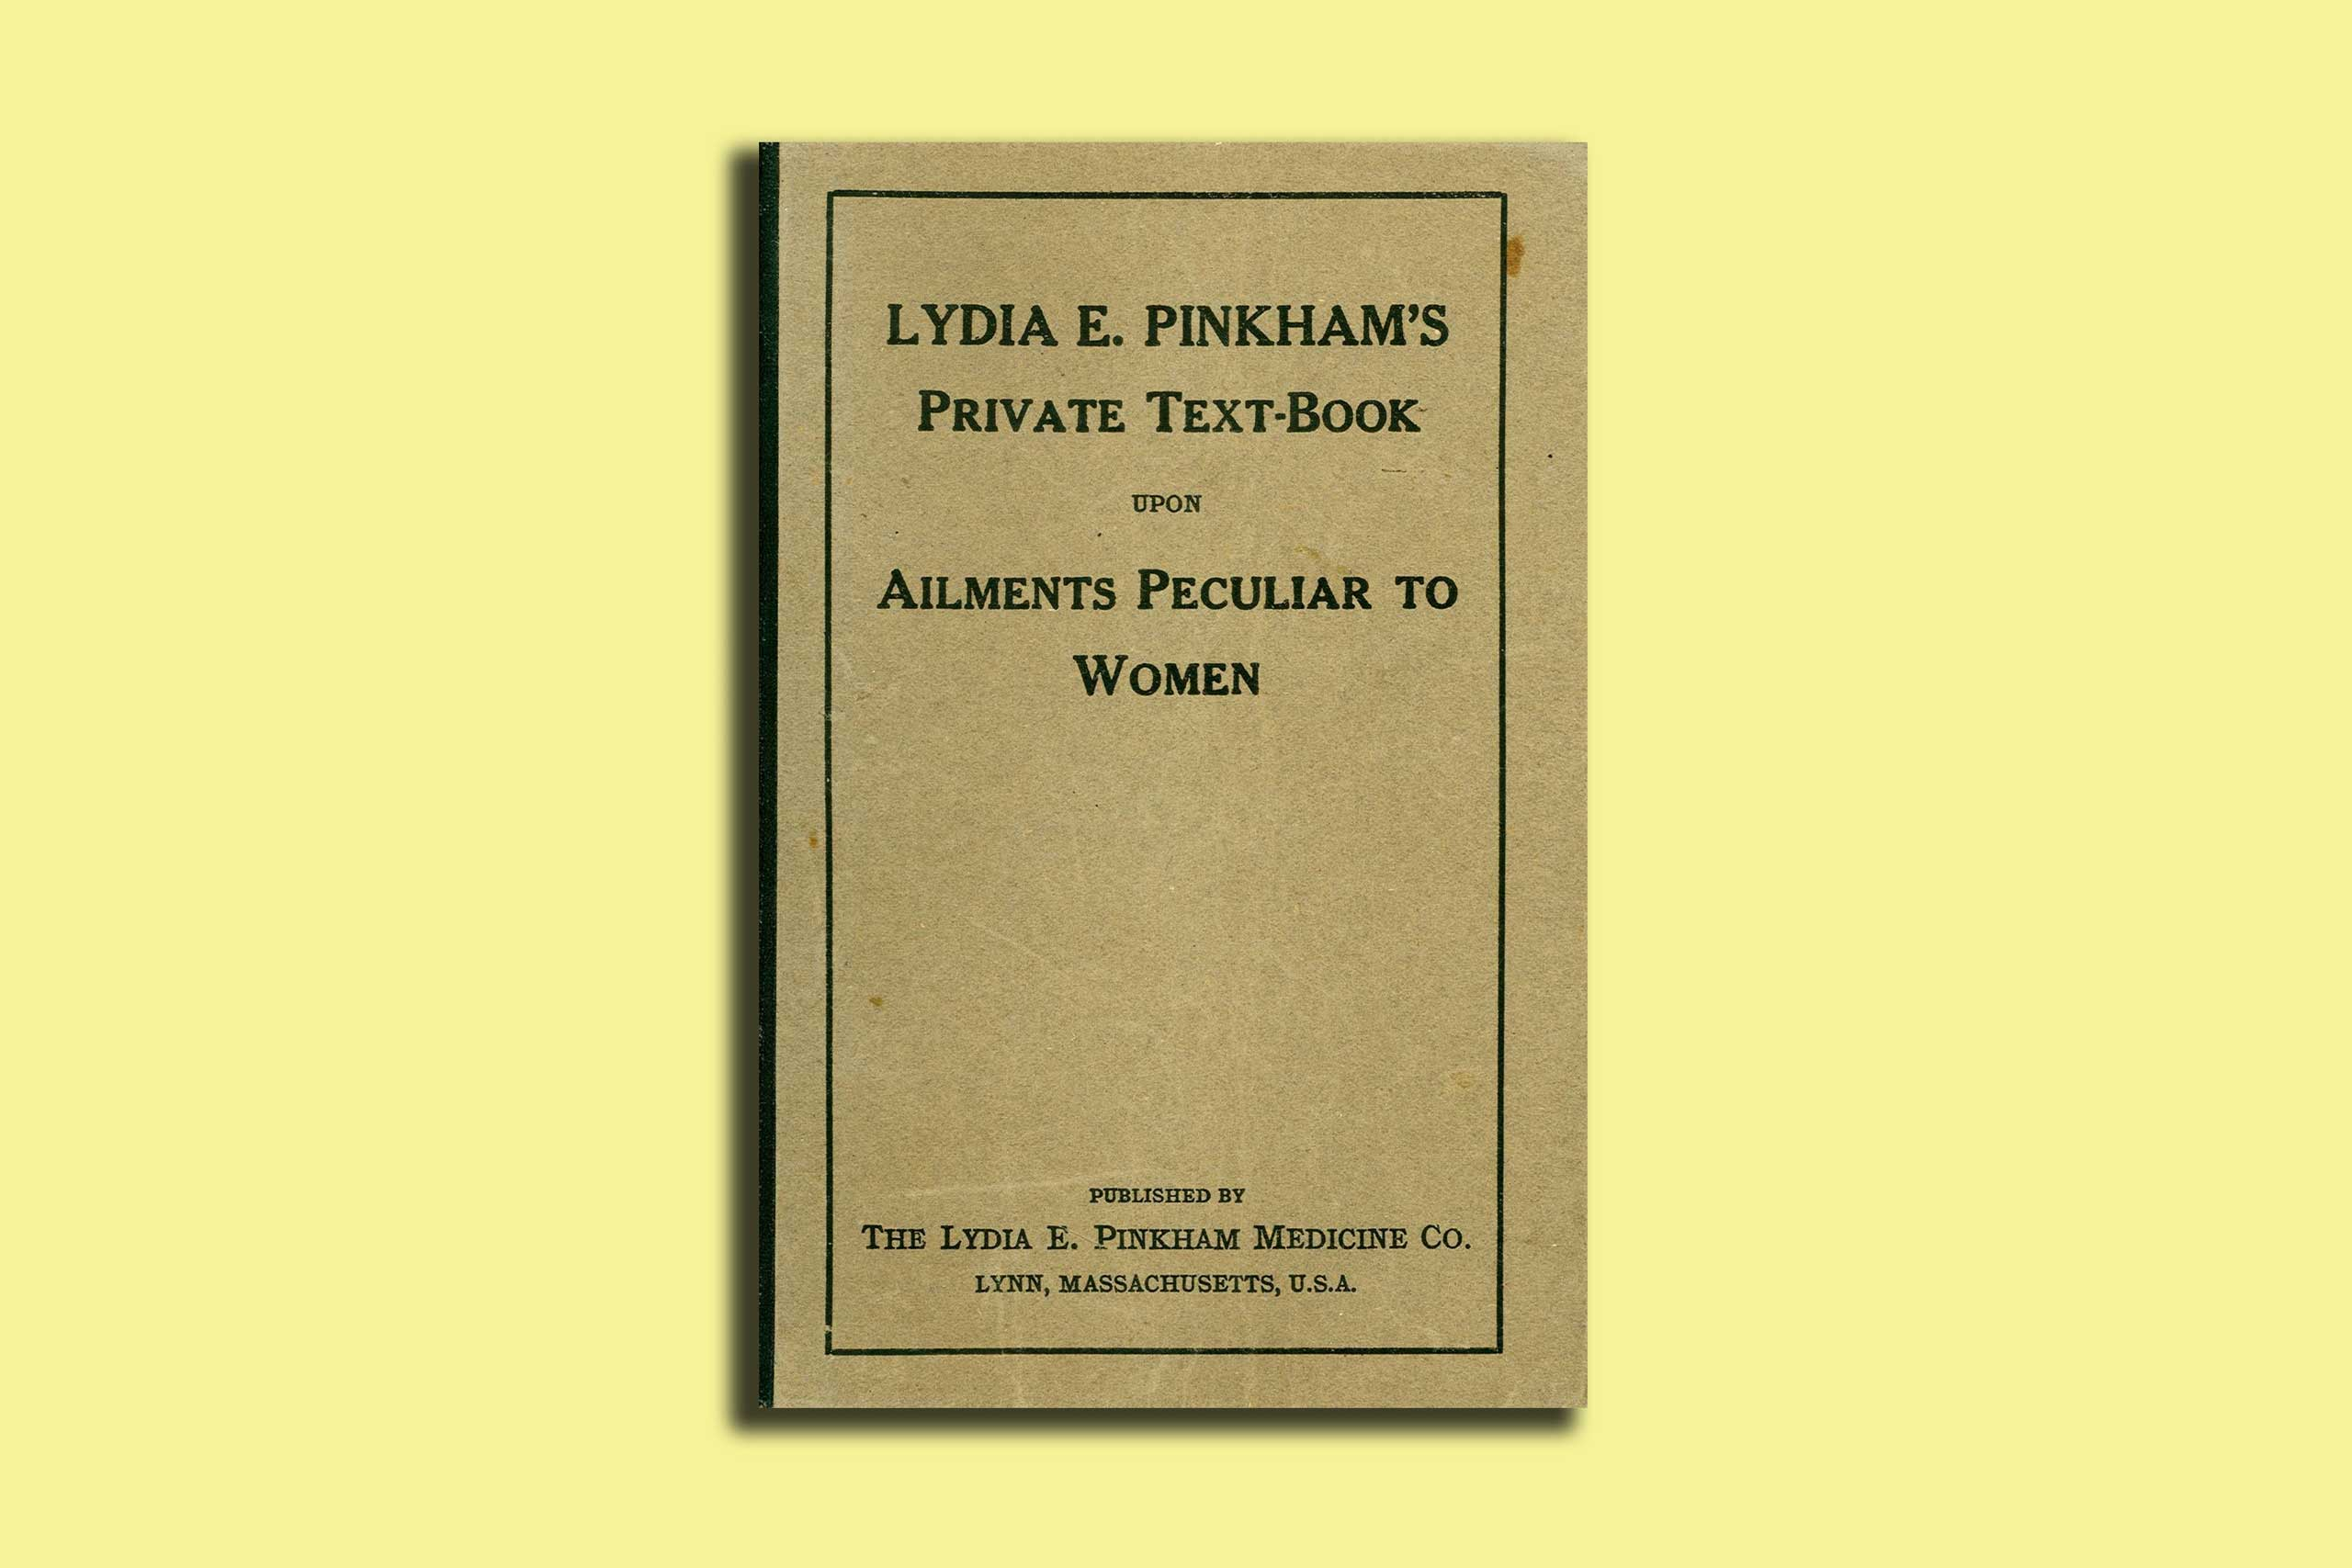 """When the organs peculiar to woman are displaced or disordered ...pangs shoot through her like winged piercing arrows or darting needlepoints"" wrote mail order doctor Lydia Pinkham in 1907."